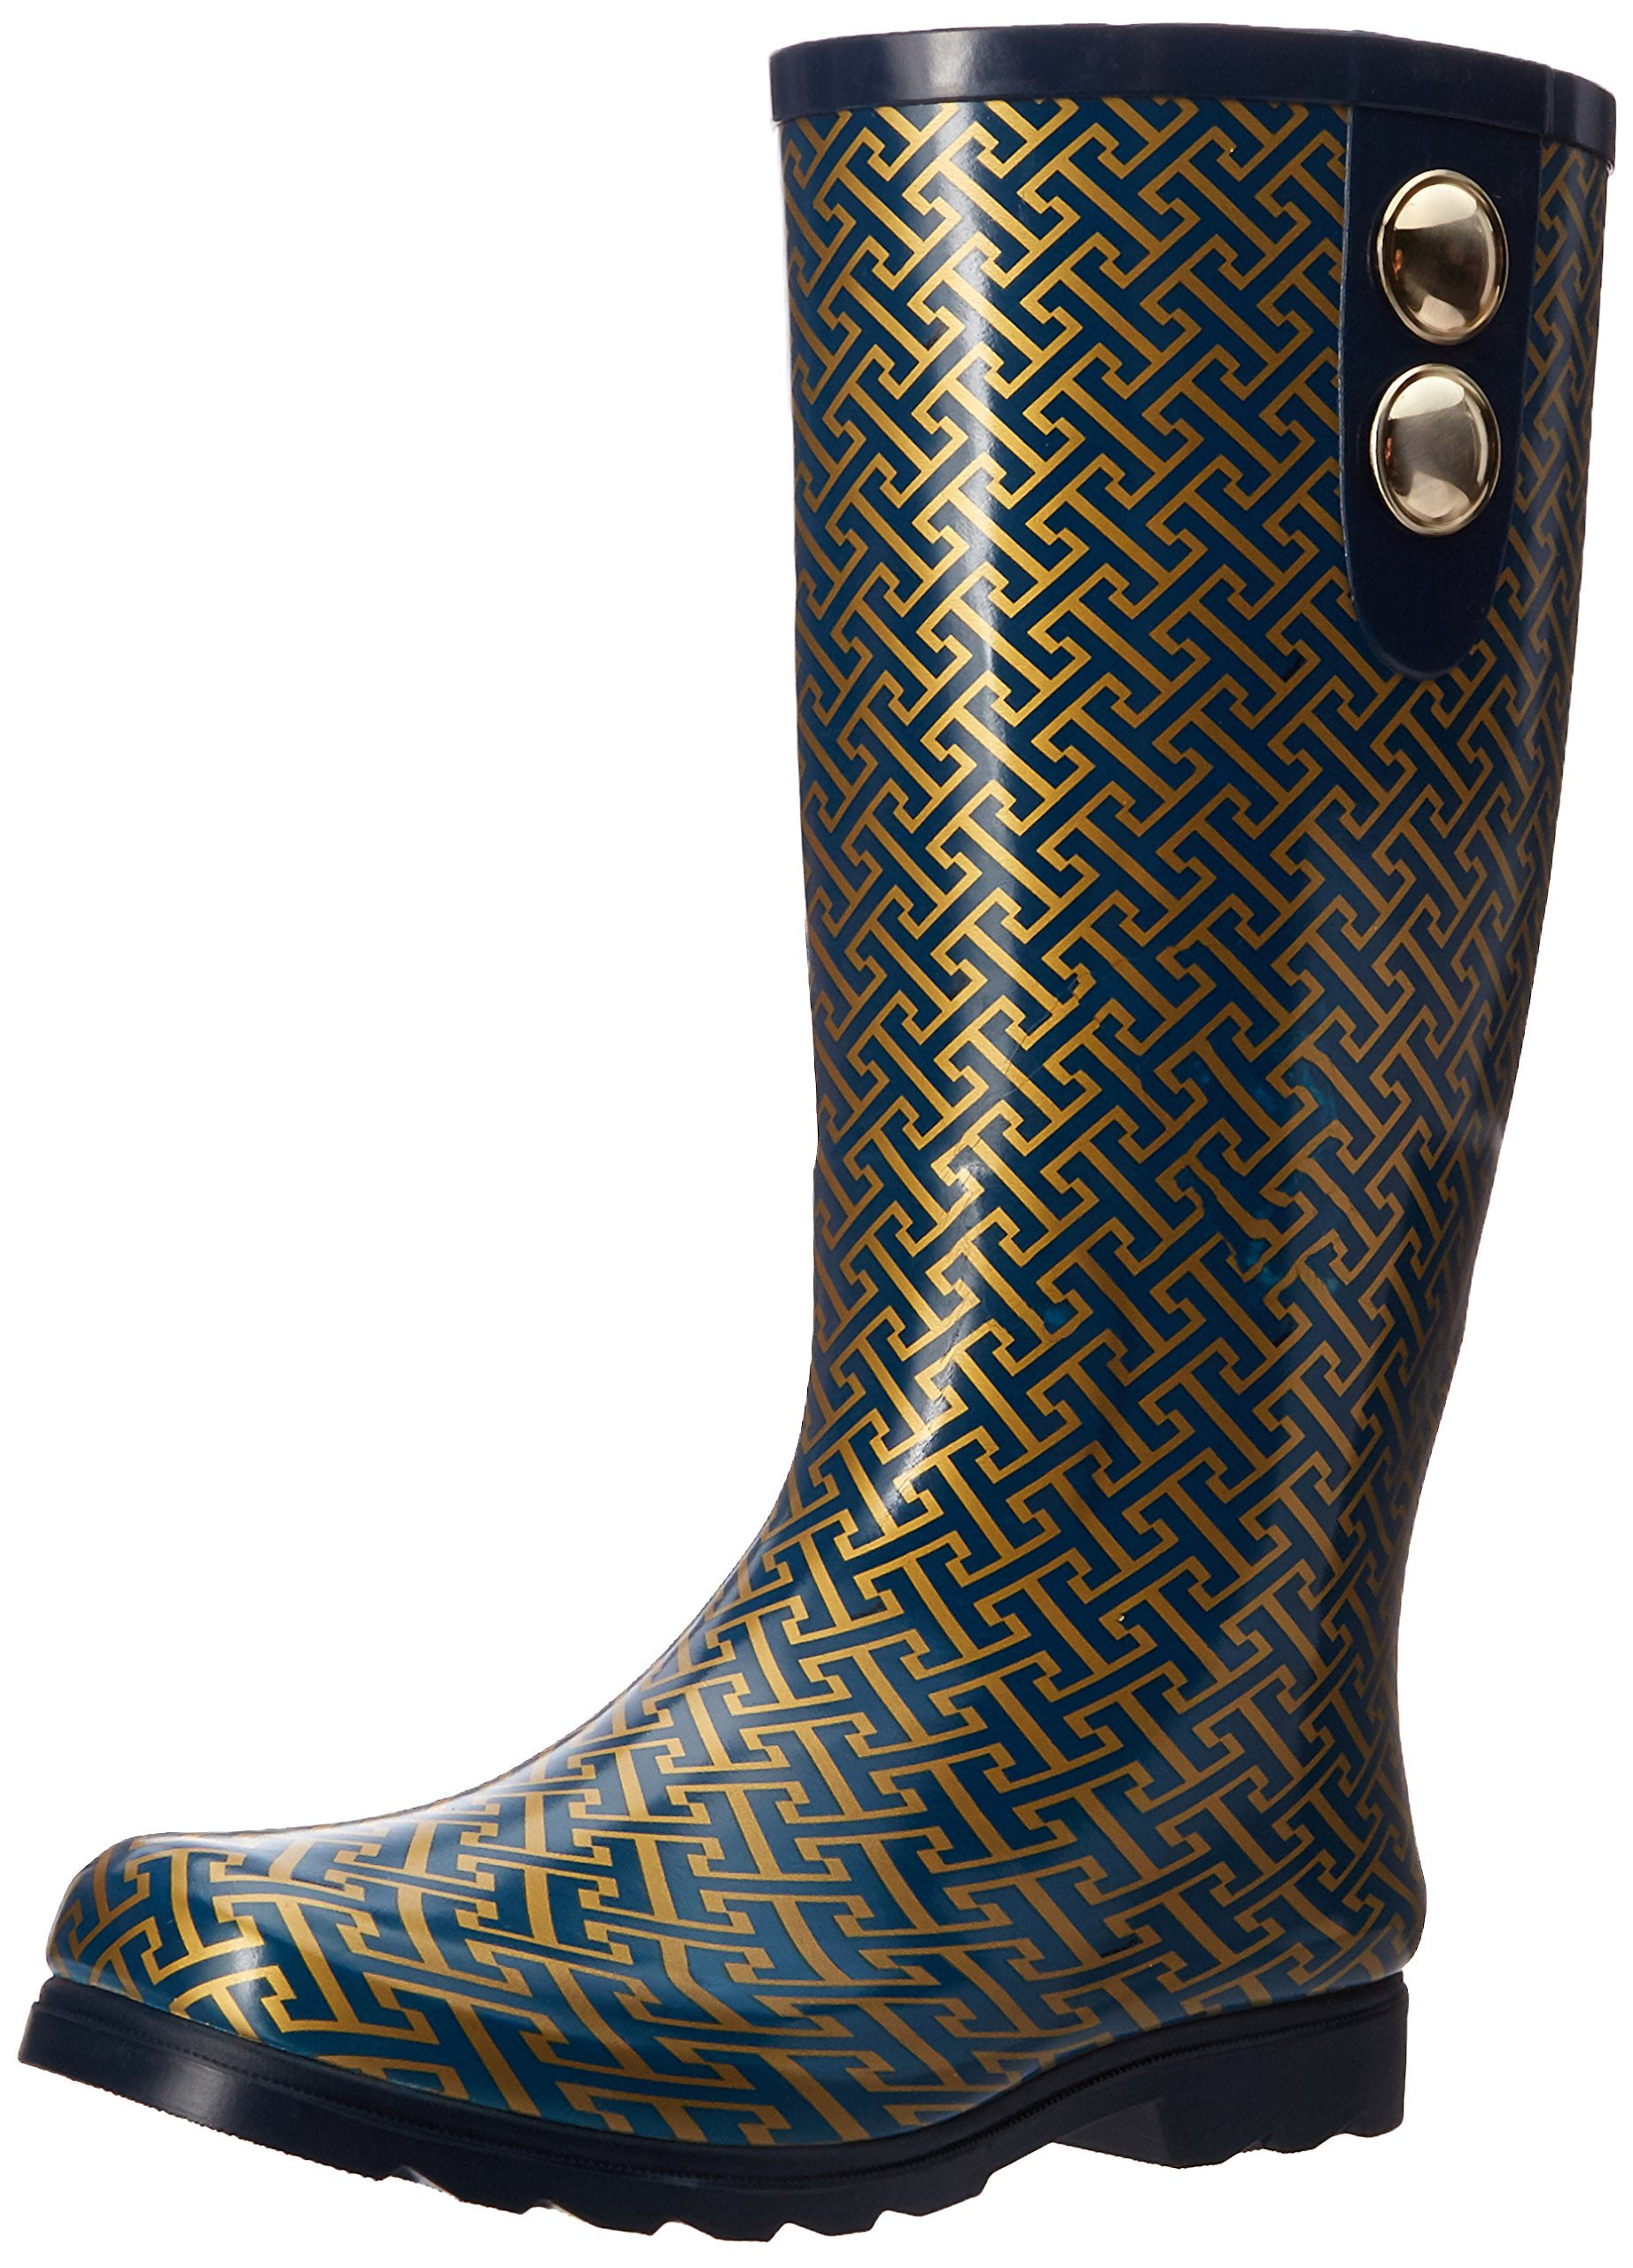 Nomad Women's Puddles II Rain Boot, Navy/Gold Hatch, 10 M US